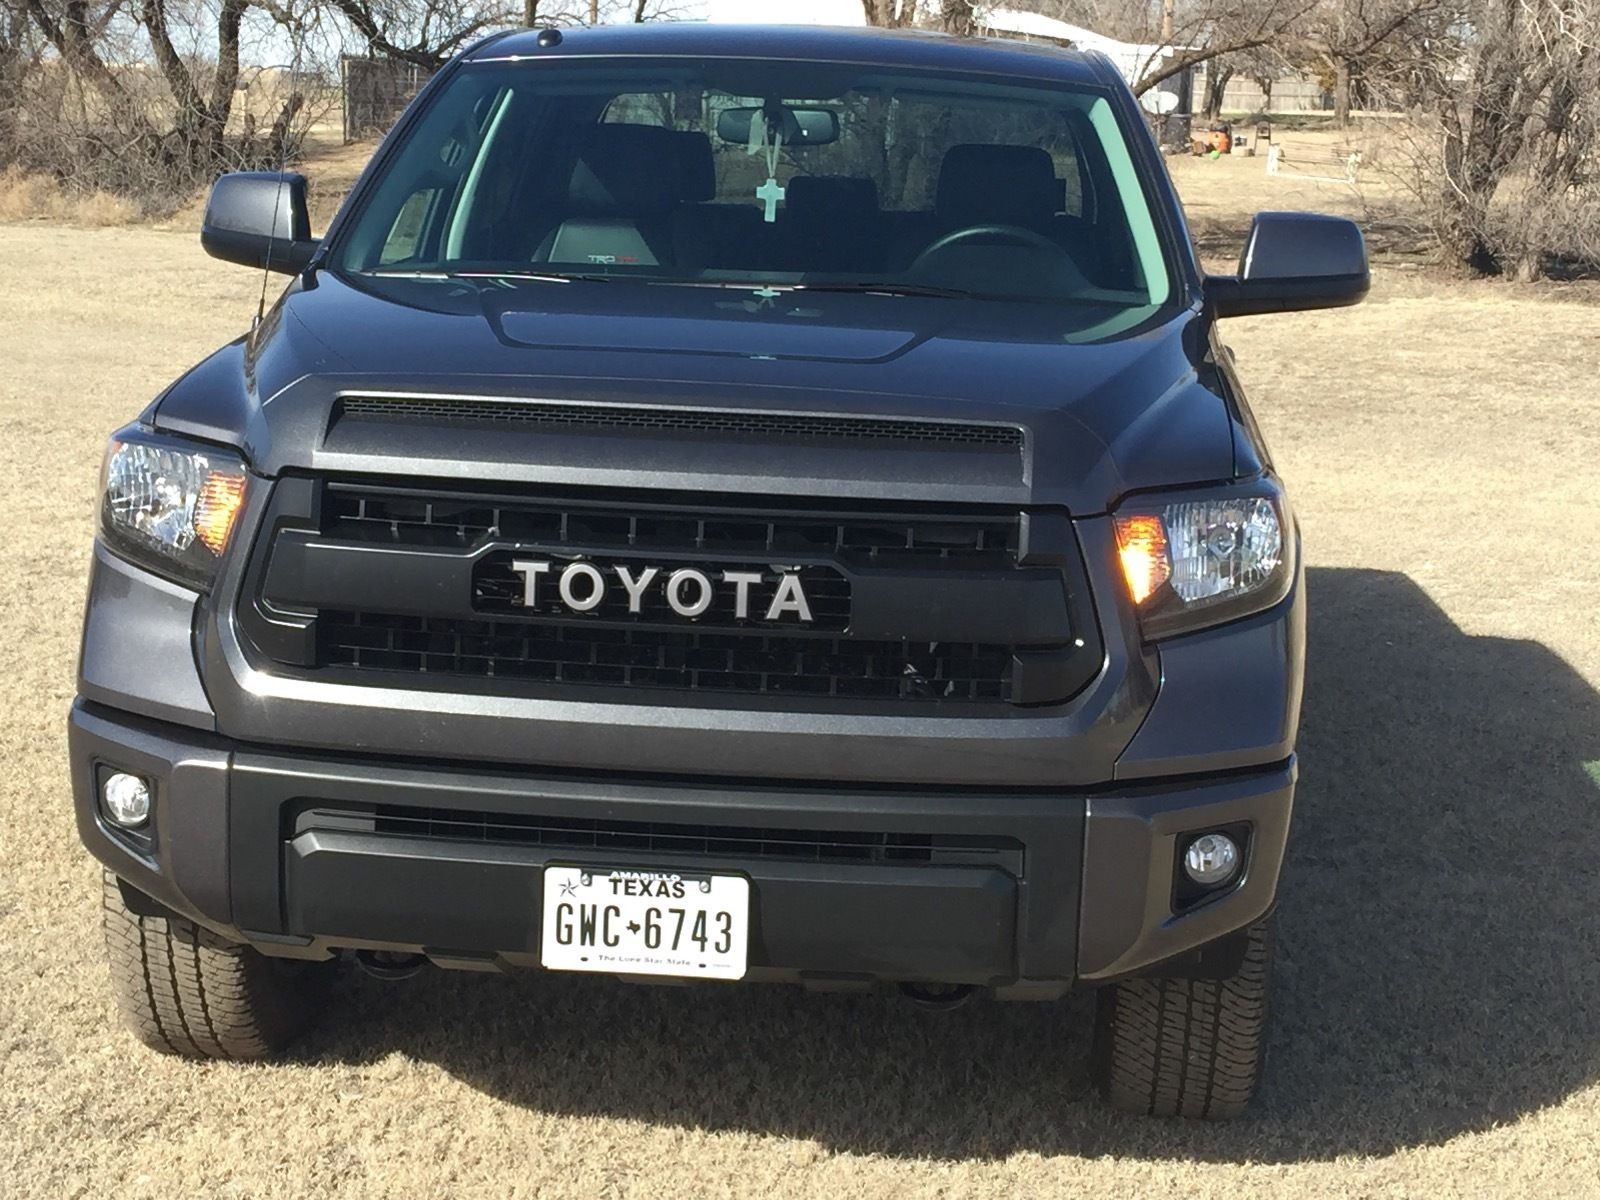 Top of the line 2016 Toyota Tundra TRD lifted for sale